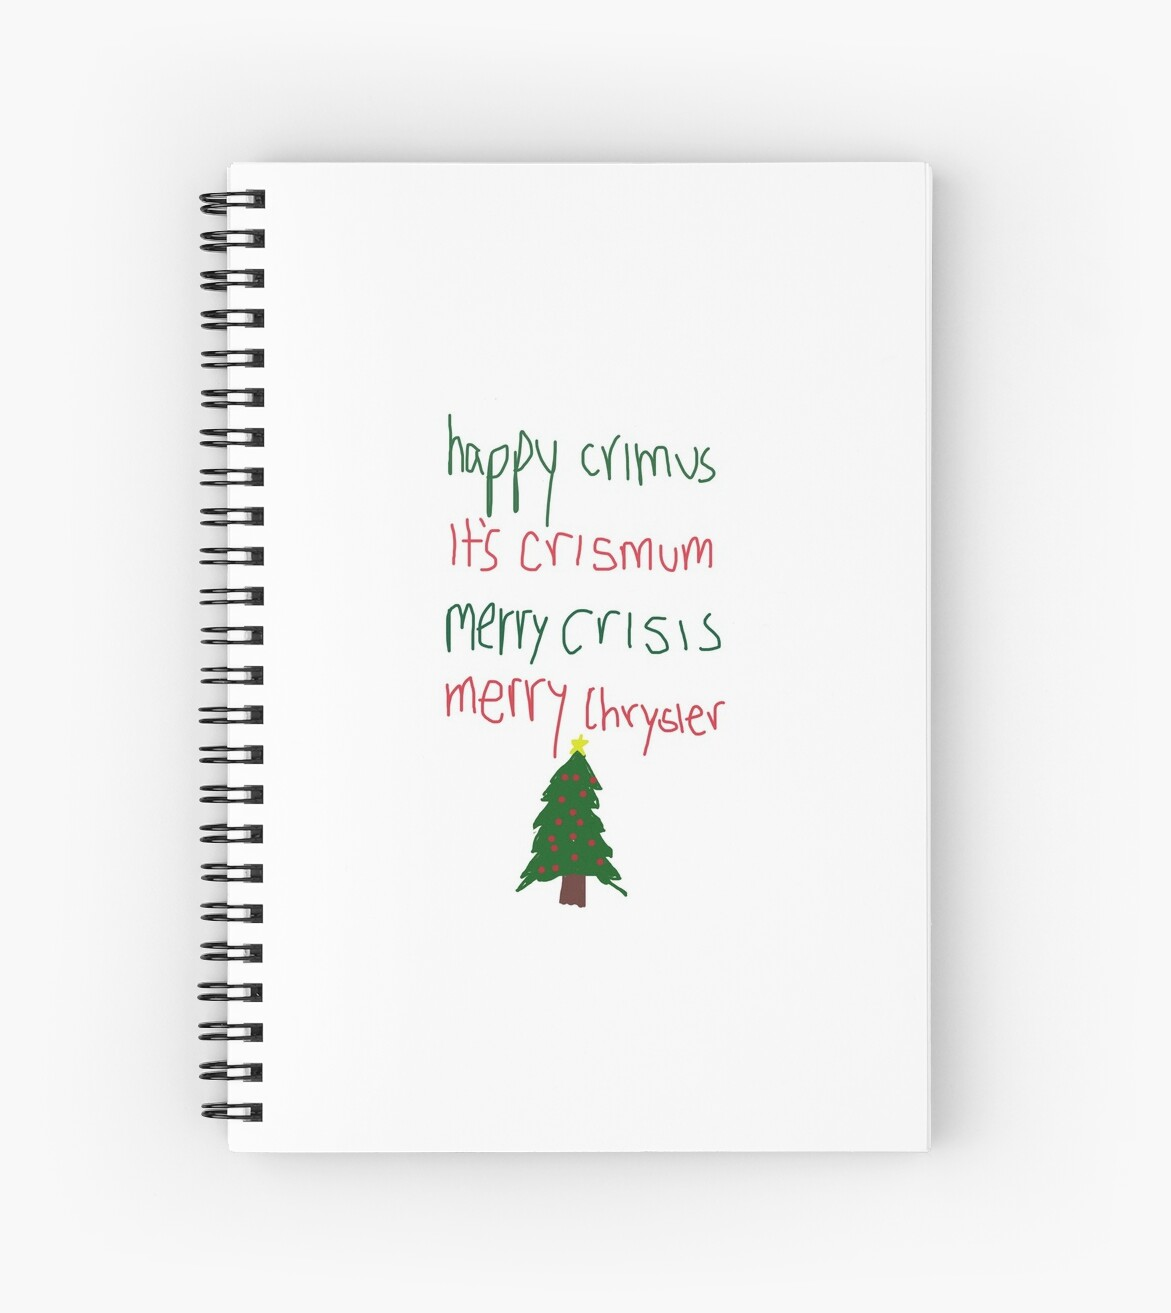 Merry Christmas Vine.Merry Christmas Vine Spiral Notebook By Prlyons